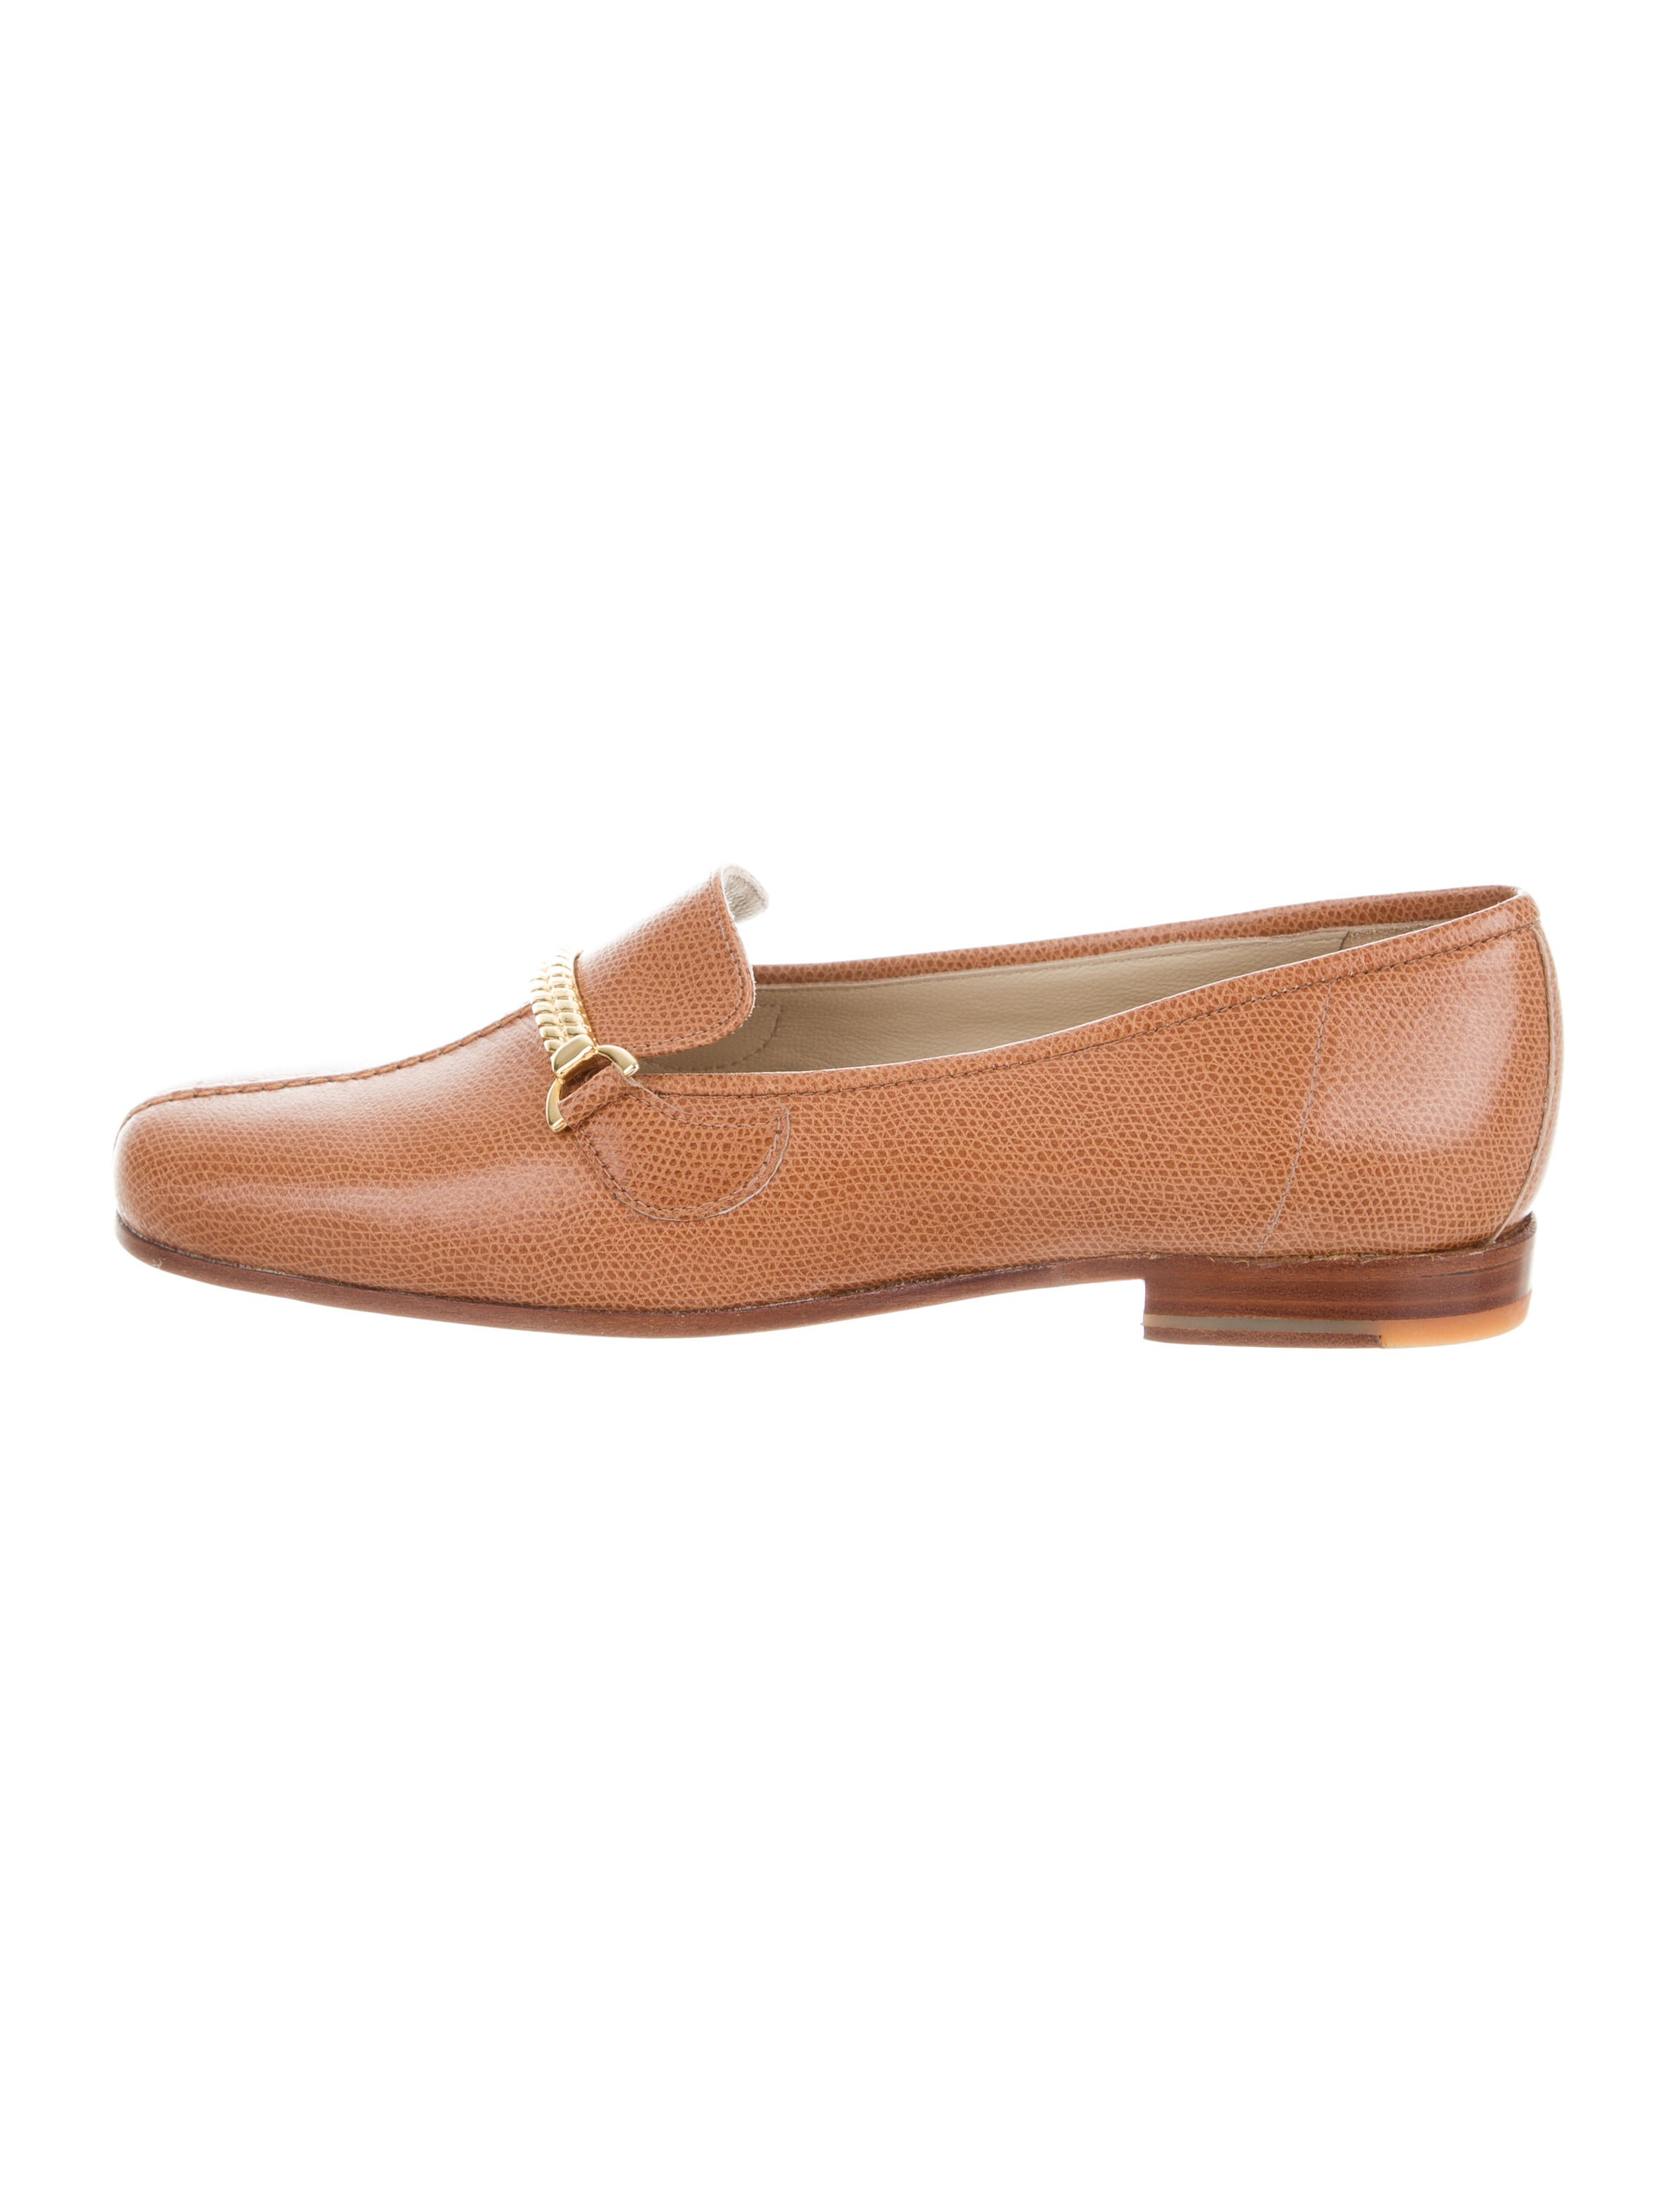 Stubbs & Wootton Leather Chain-Link Loafers buy cheap best store to get cheap low price pick a best cheap price xfPvQrycK2